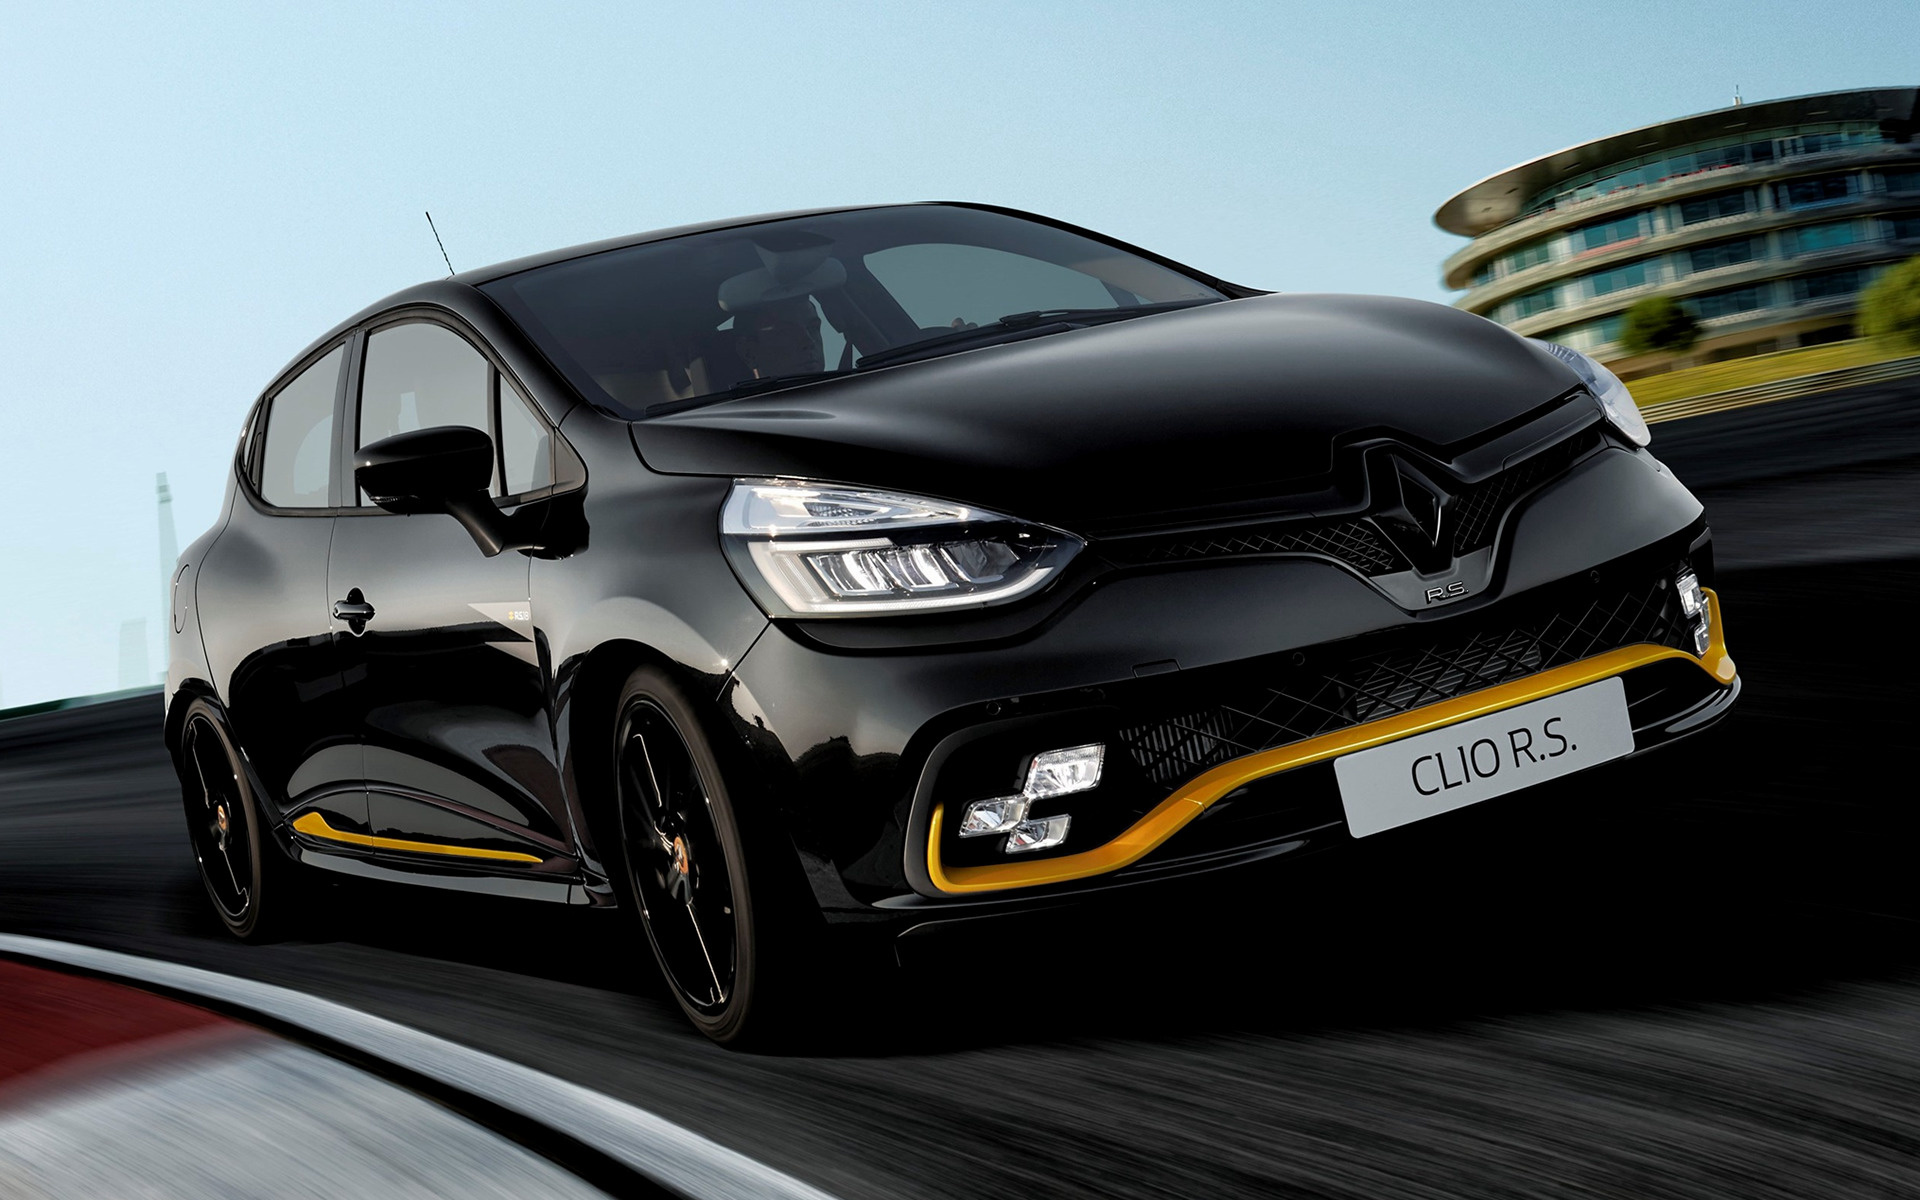 2018 Renault Clio Rs 18 Wallpapers And Hd Images Car Pixel